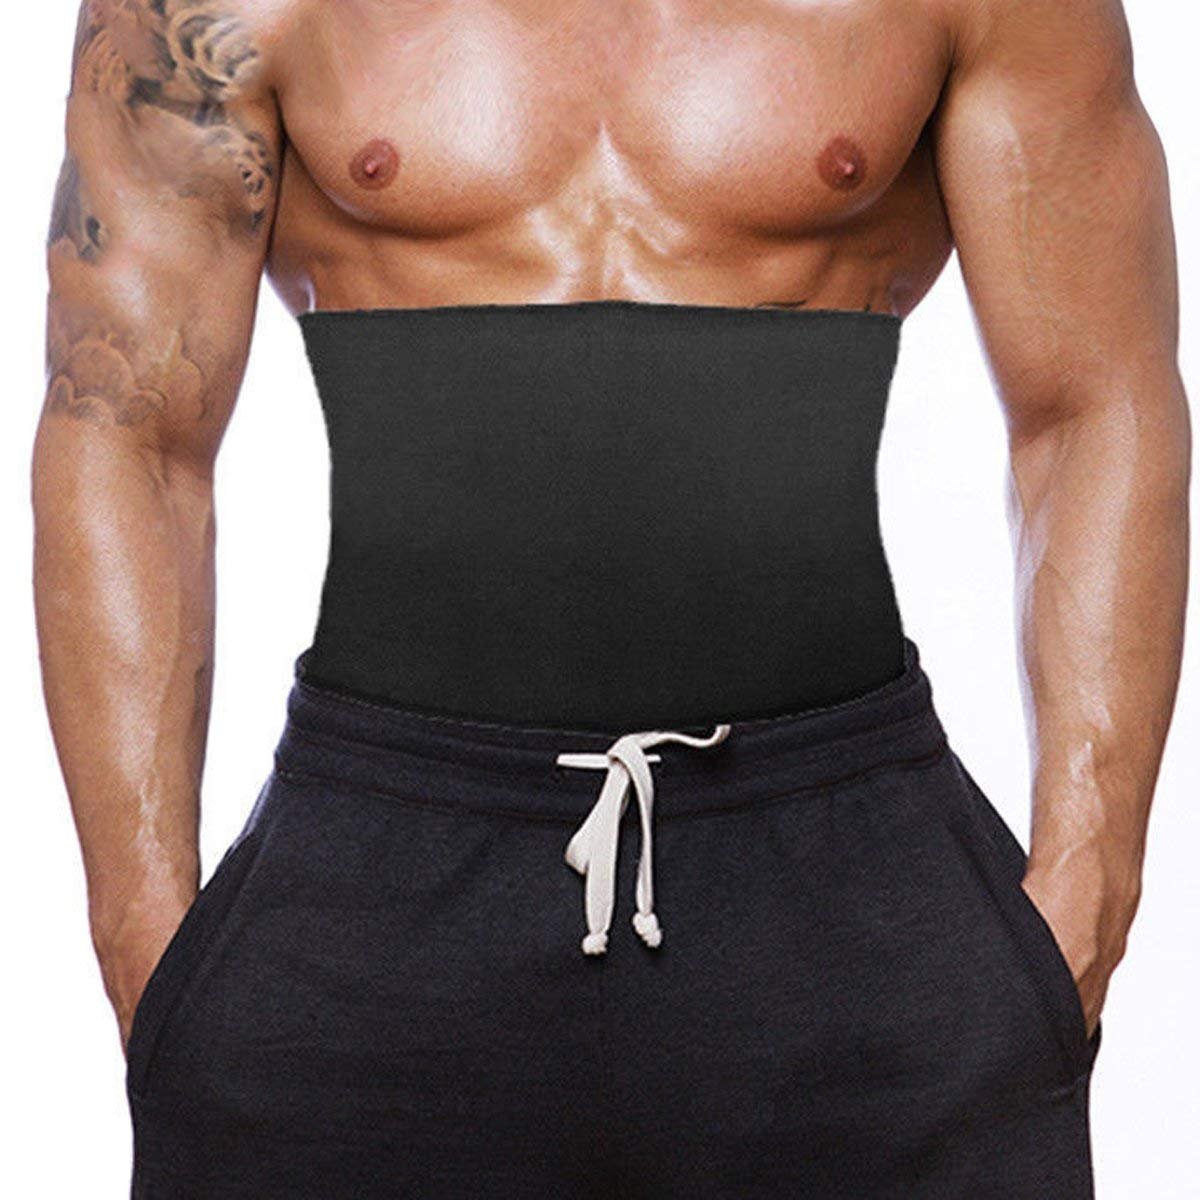 95c6f6779cc Details about Male Neoprene Hot Shapers Waist Trainer Cincher Corset Men  Body Modeling